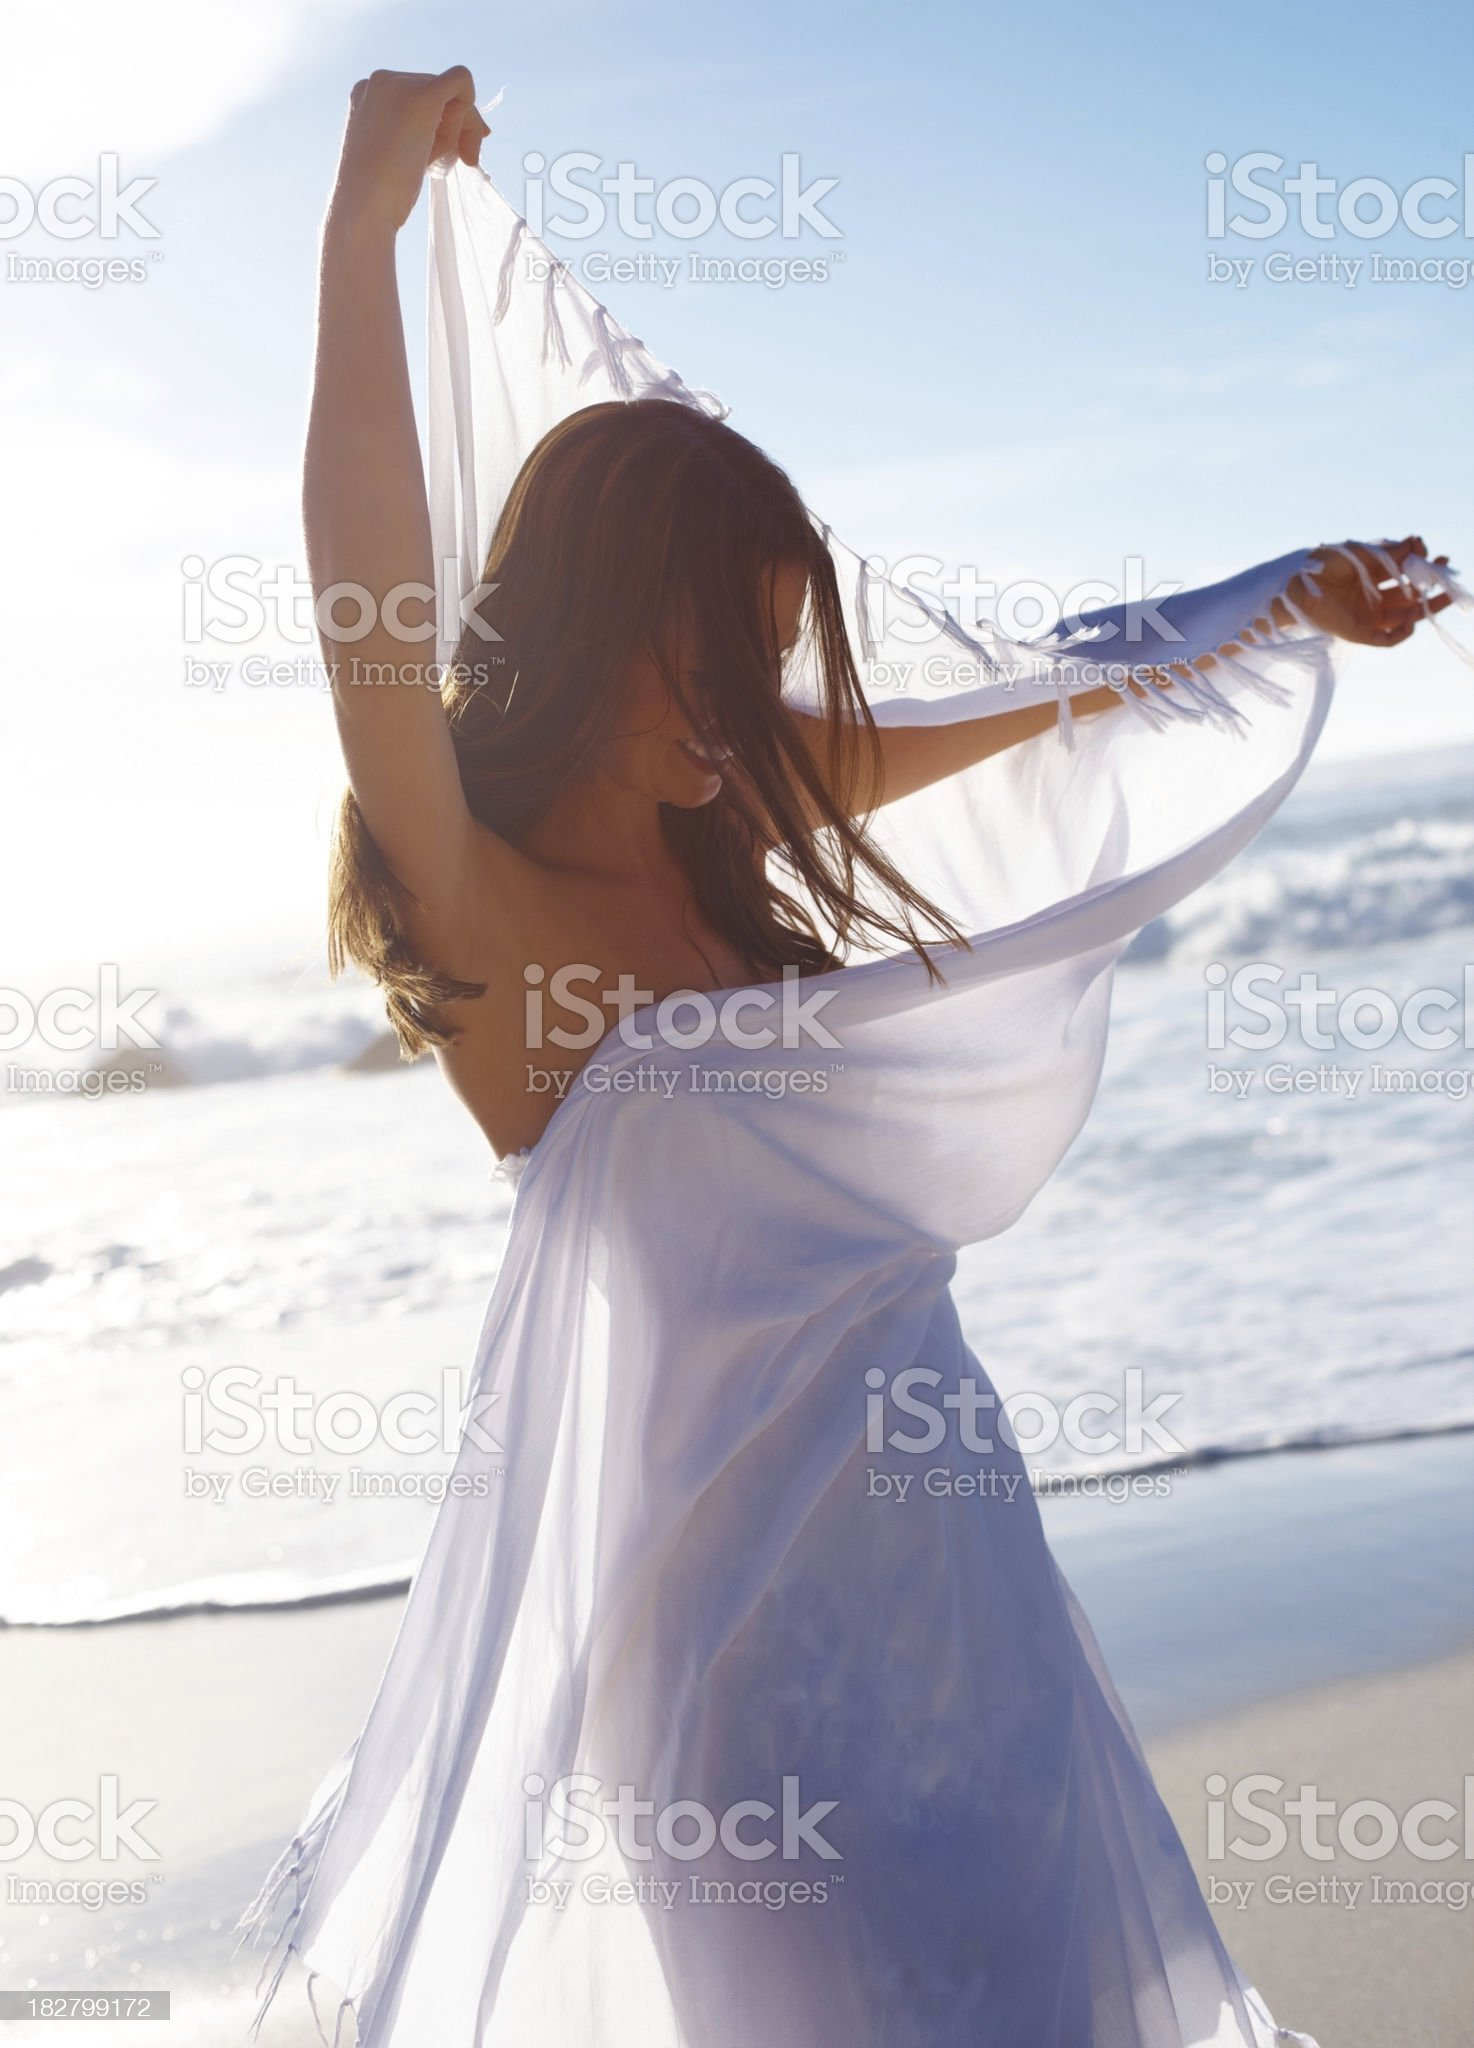 Mid adult female holding a stole while standing on beach royalty-free stock photo